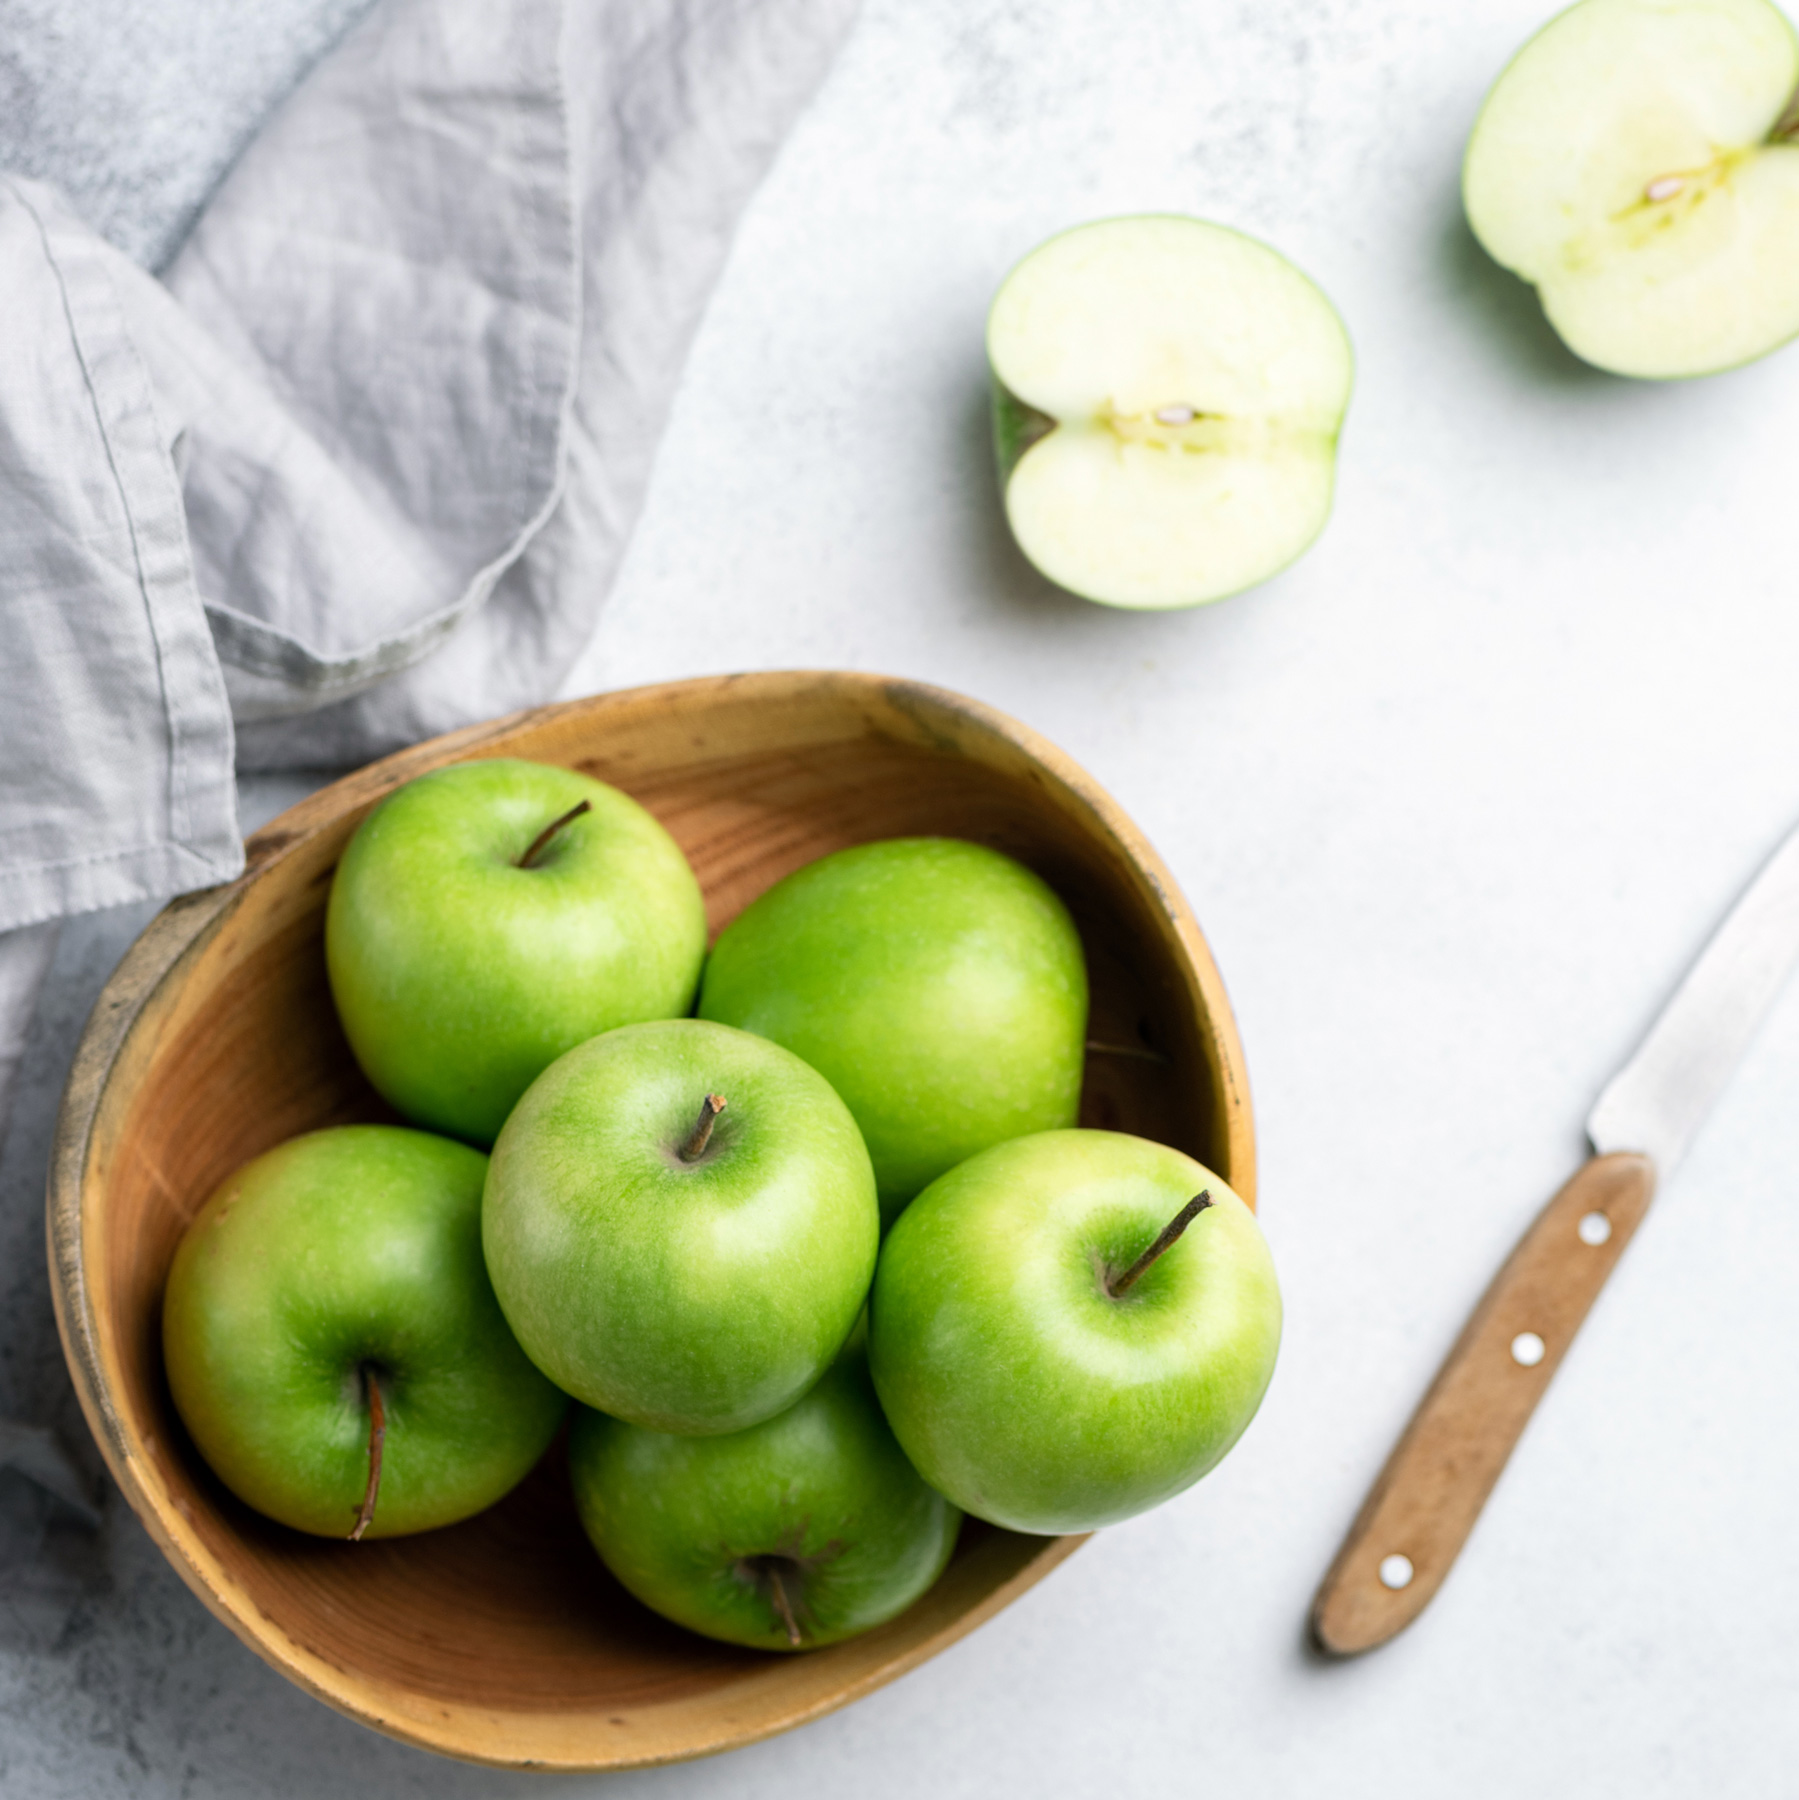 Ways to Be Healthy Every Day: Green apples in a wood bowl